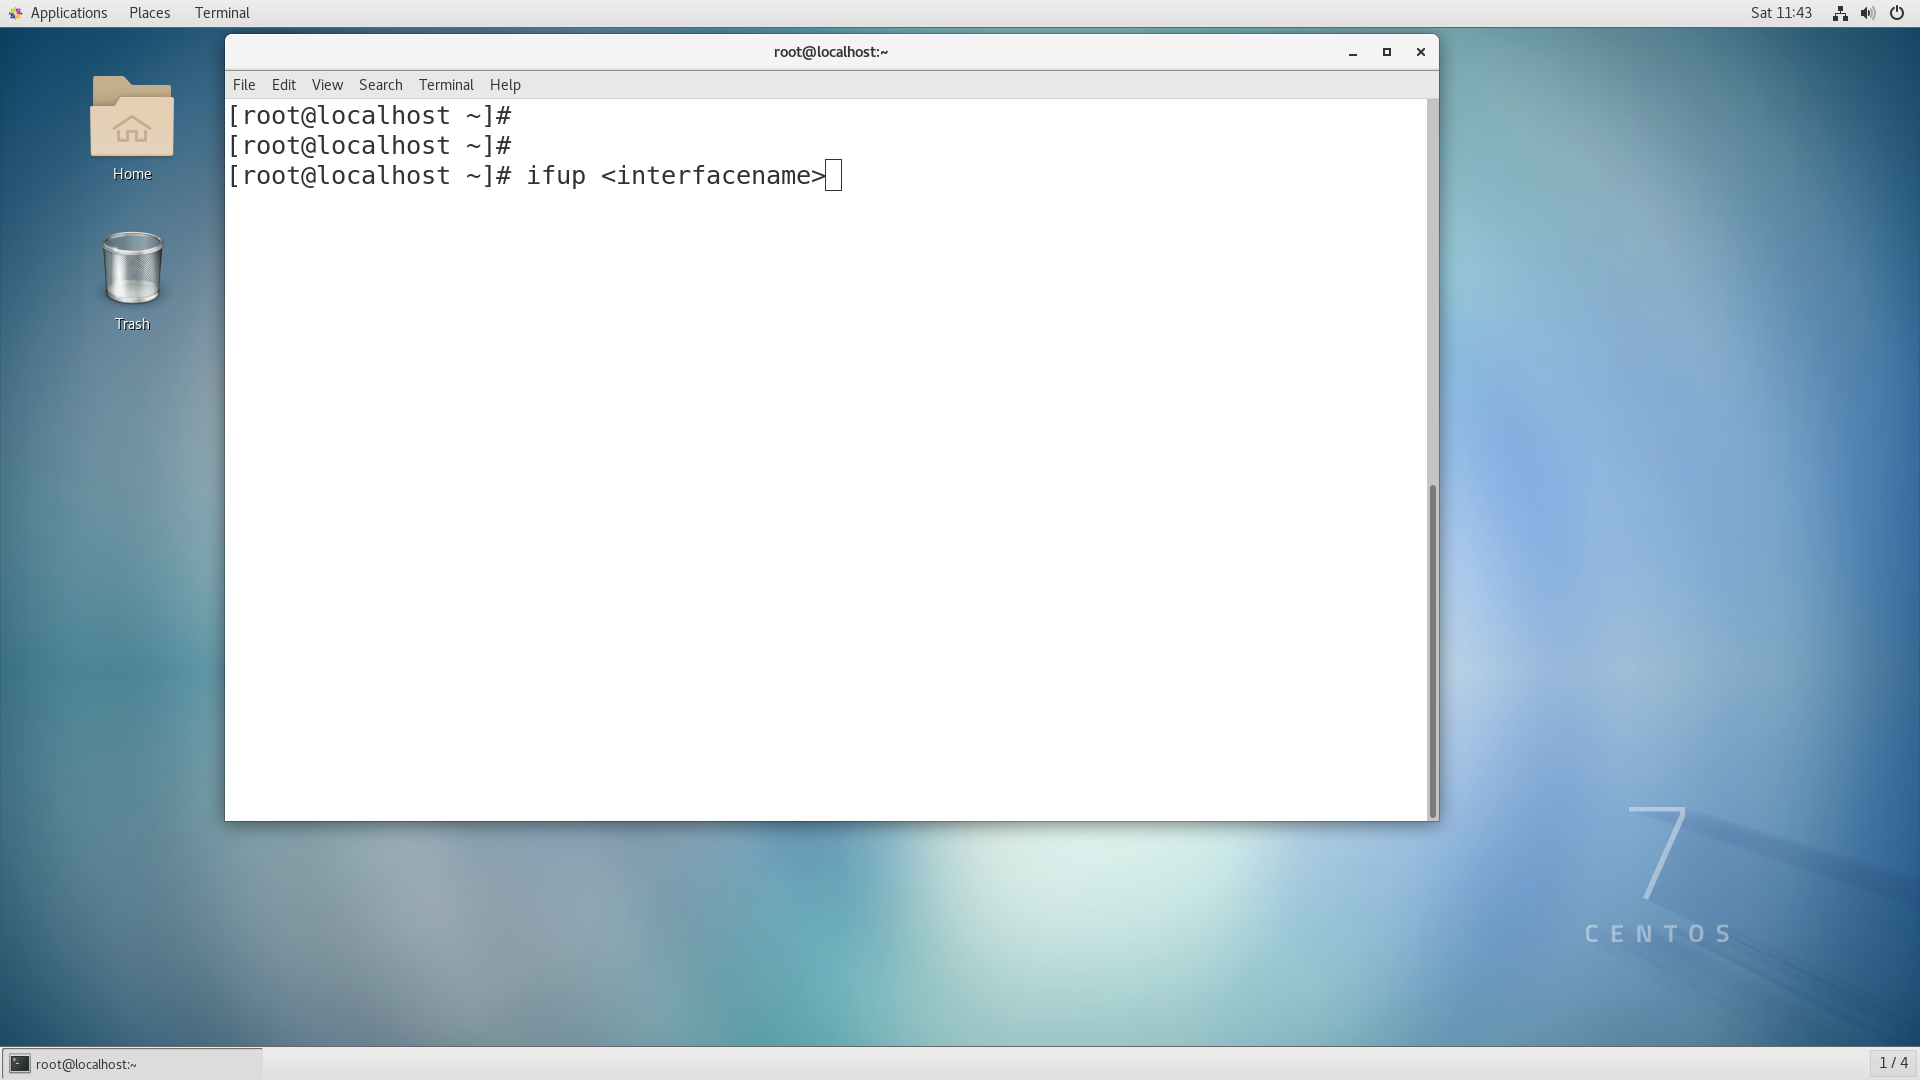 installing Openstack - Step 2 ( If  you cant access internet try to ifup the interface to get IP through NAT)